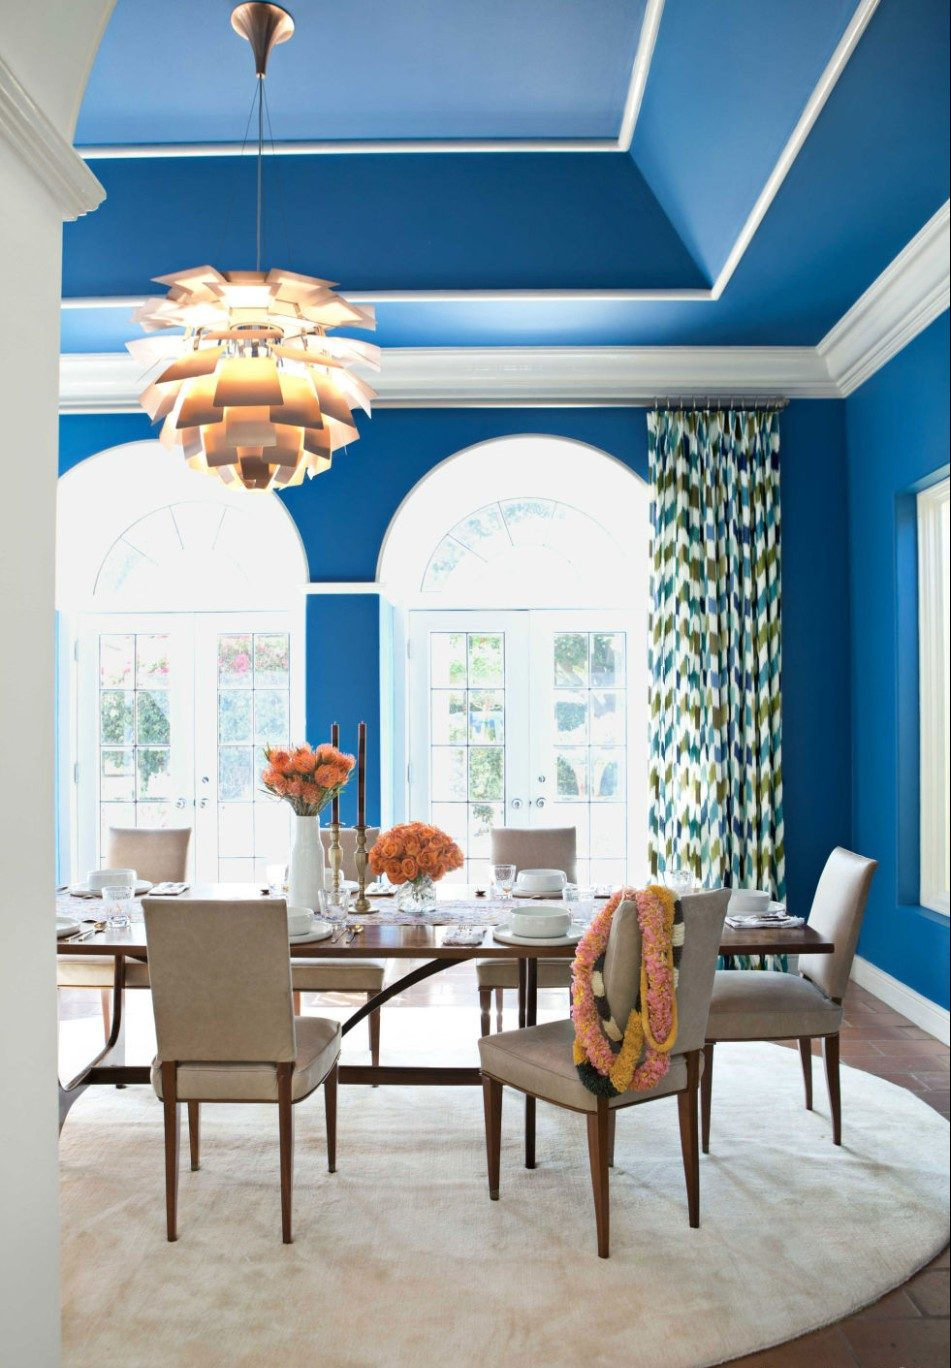 How to Choose Your Dining Room Color for 2018 | www.bocadolobo.com #moderndiningtables #diningroom #thediningroom #diningarea #diningdesign #roomdesign #colours #roomcolors @moderndiningtables Dining Room Color How to Choose Your Dining Room Color for 2018 How to Choose Your Dining Room   s Color for 2018 9 e1515502360639